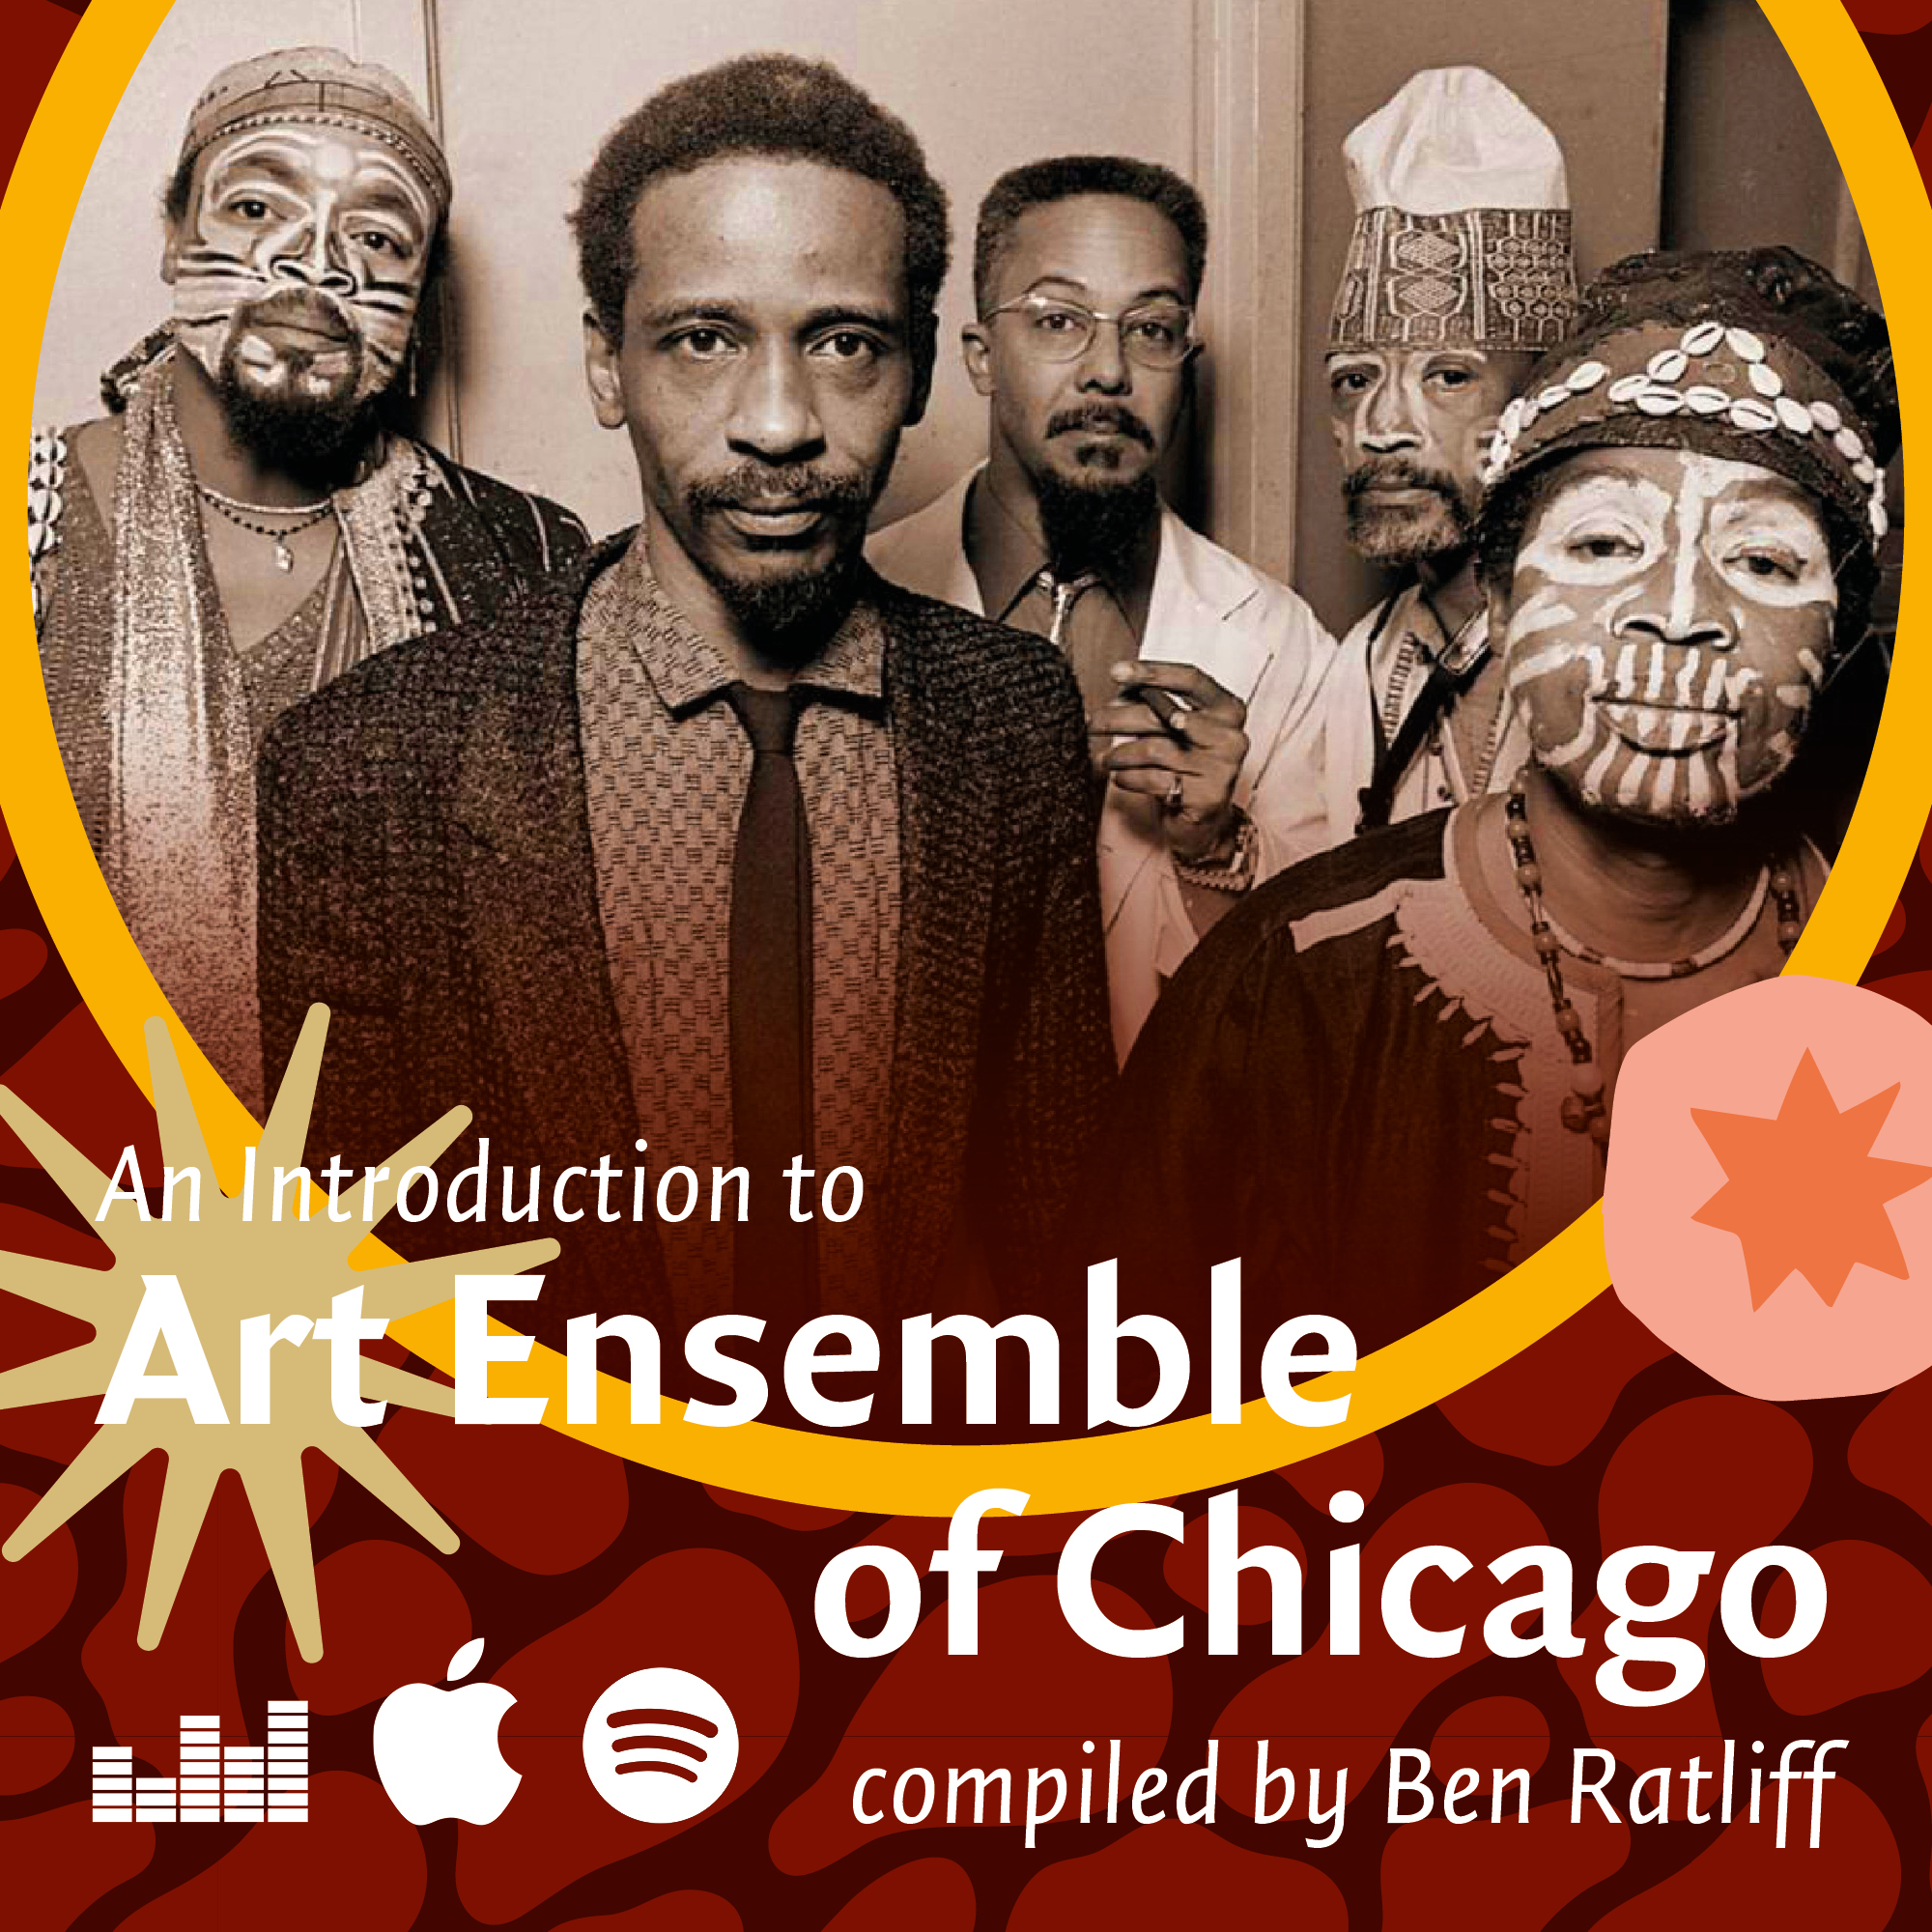 Playlist: An Introduction to Art Ensemble of Chicago, compiled by Ben Ratliff